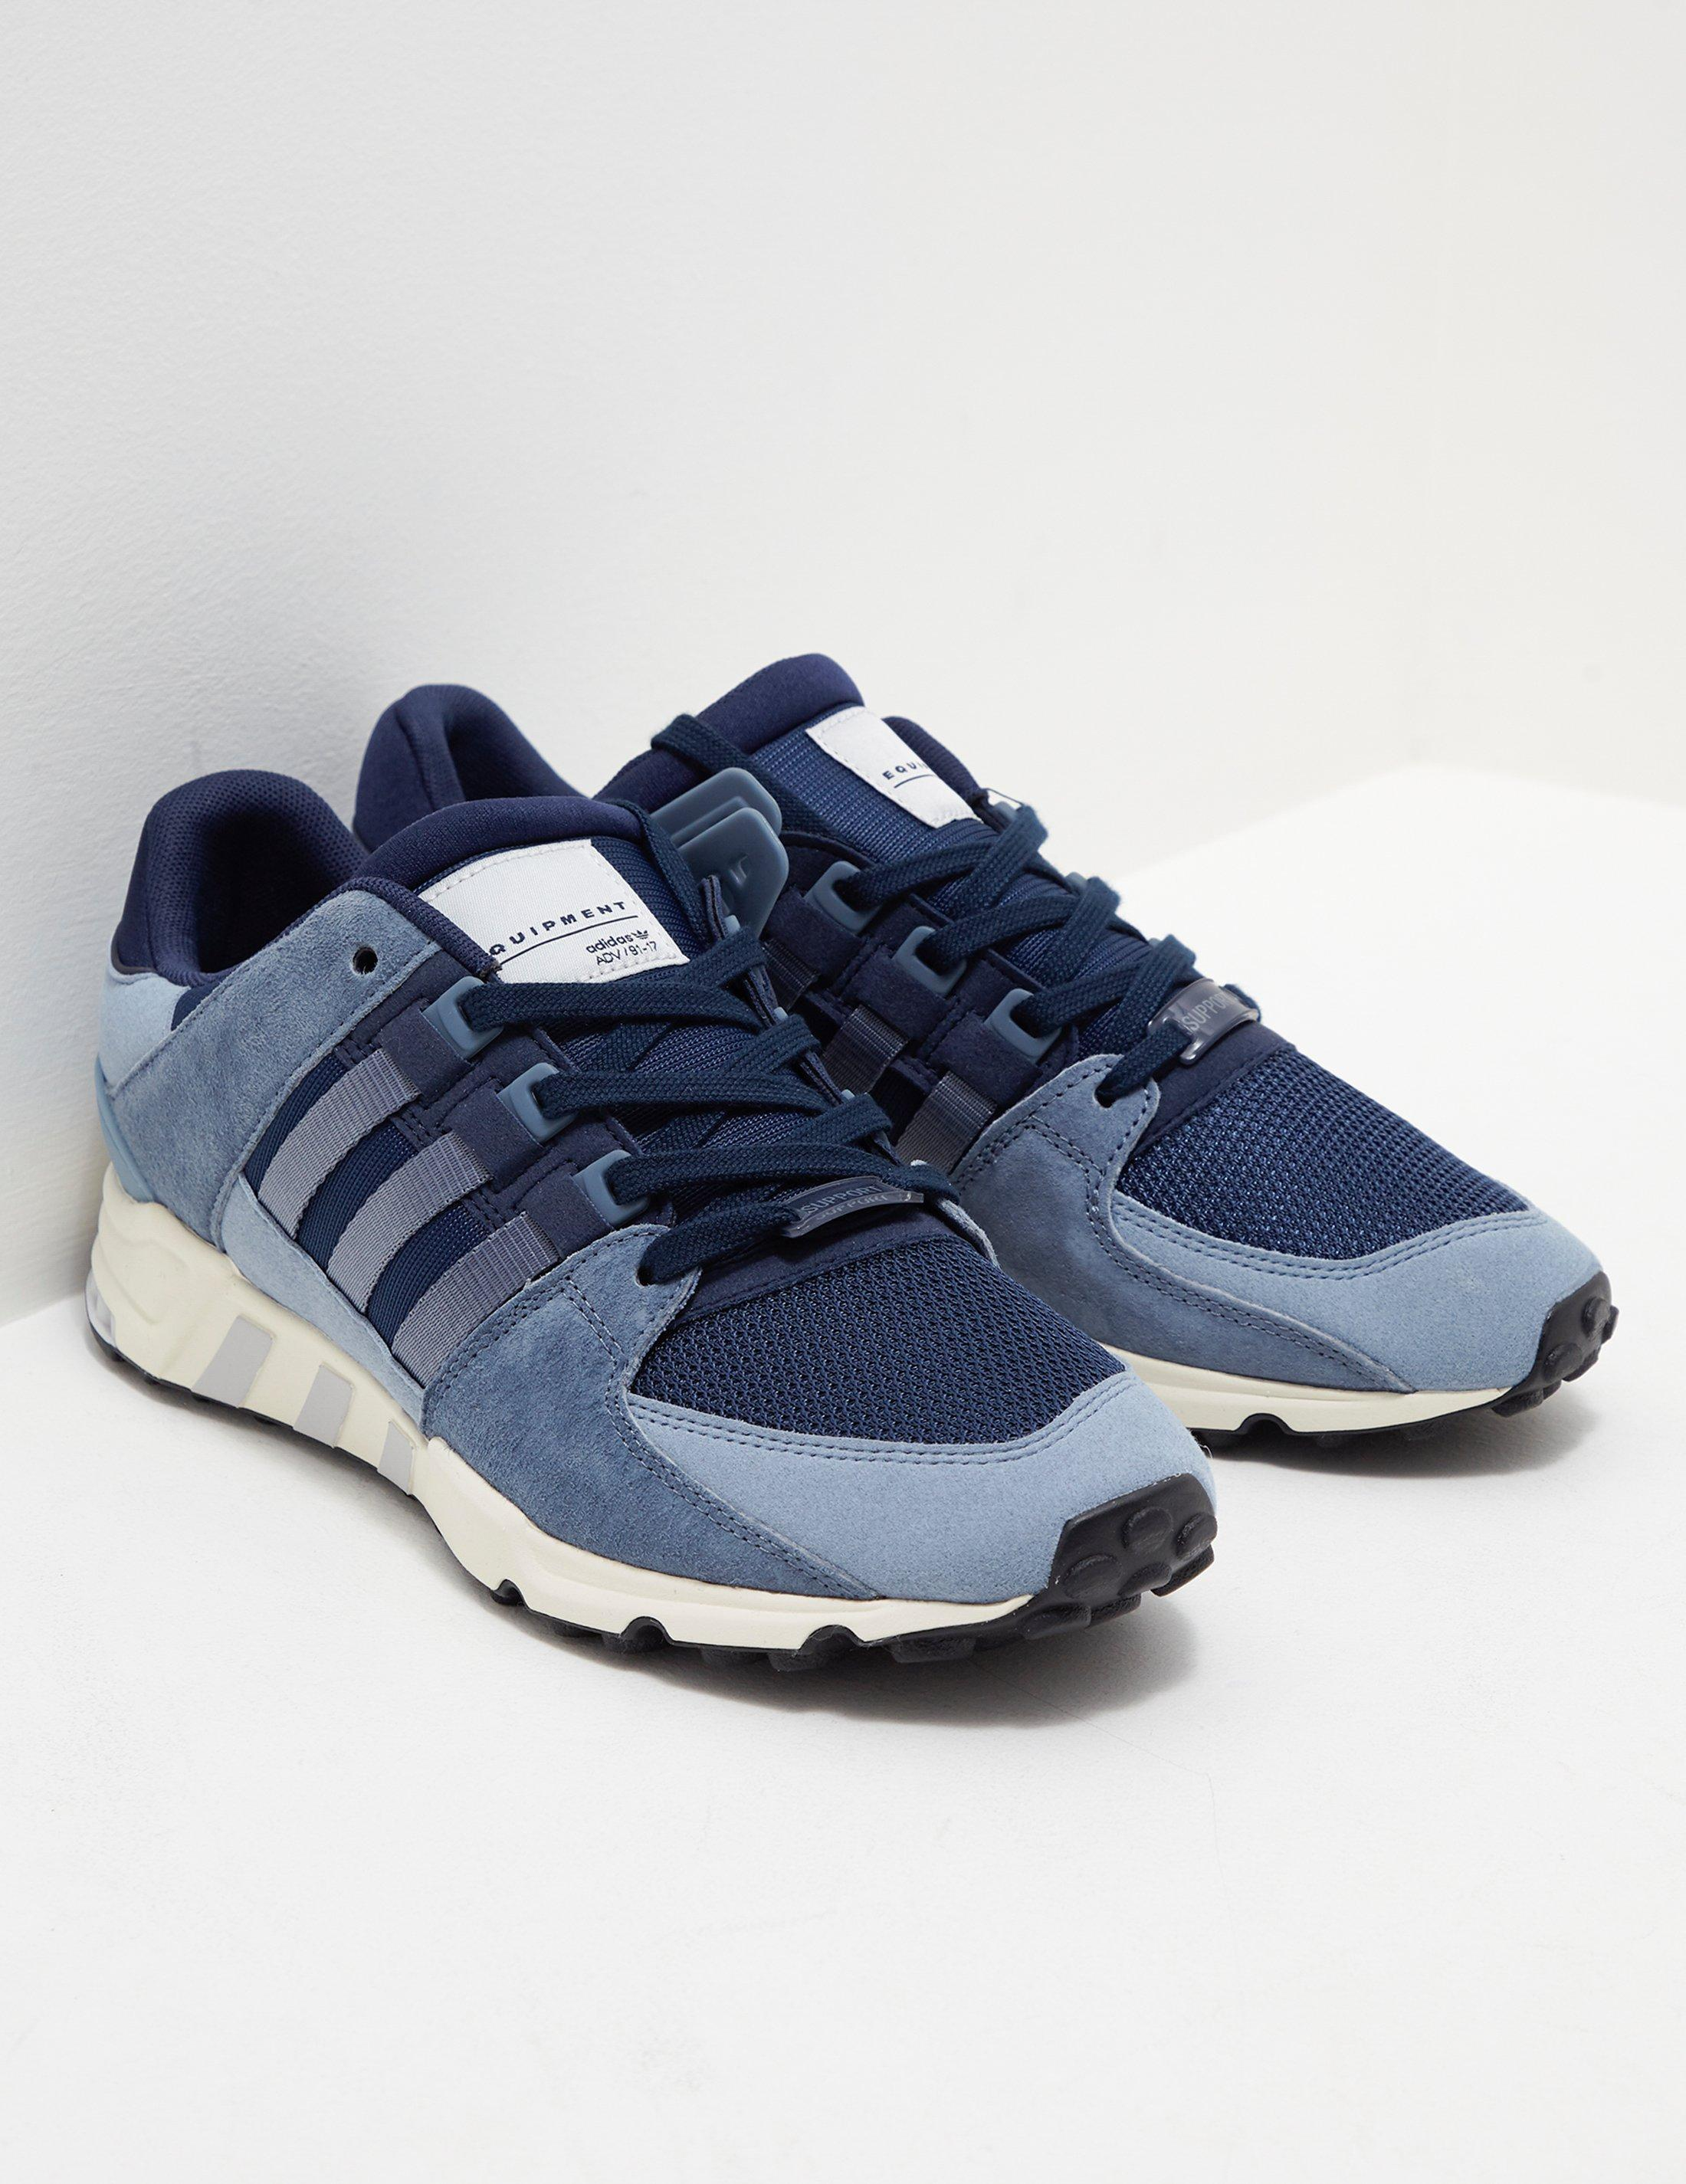 brand new bbd3d 65ae9 Mens In Navy Eqt Support Adidas Originals Lyst Running Blue